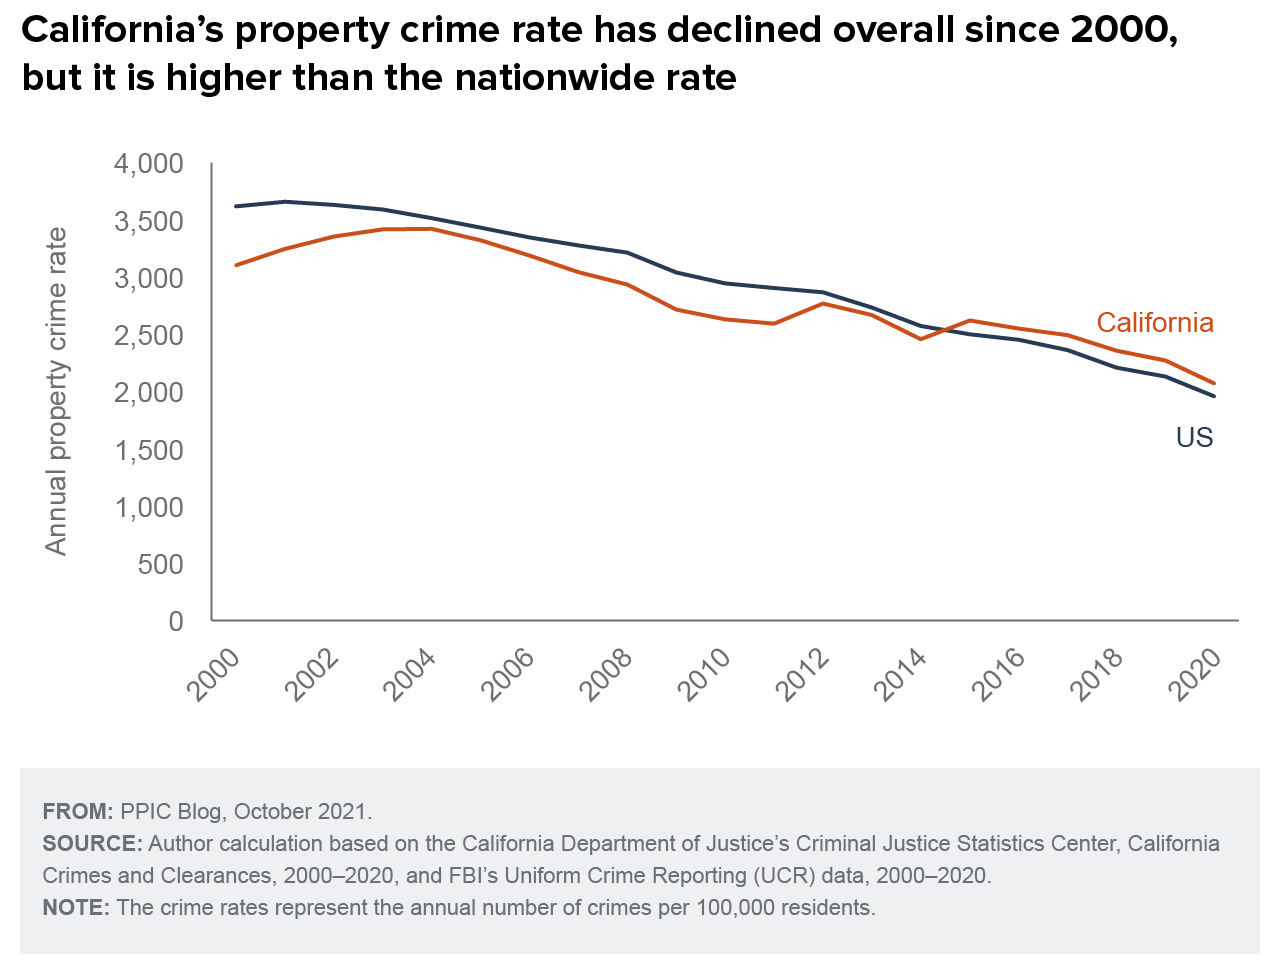 figure - California's property crime rate has declined overall since 2000, but it is higher than the nationwide rate